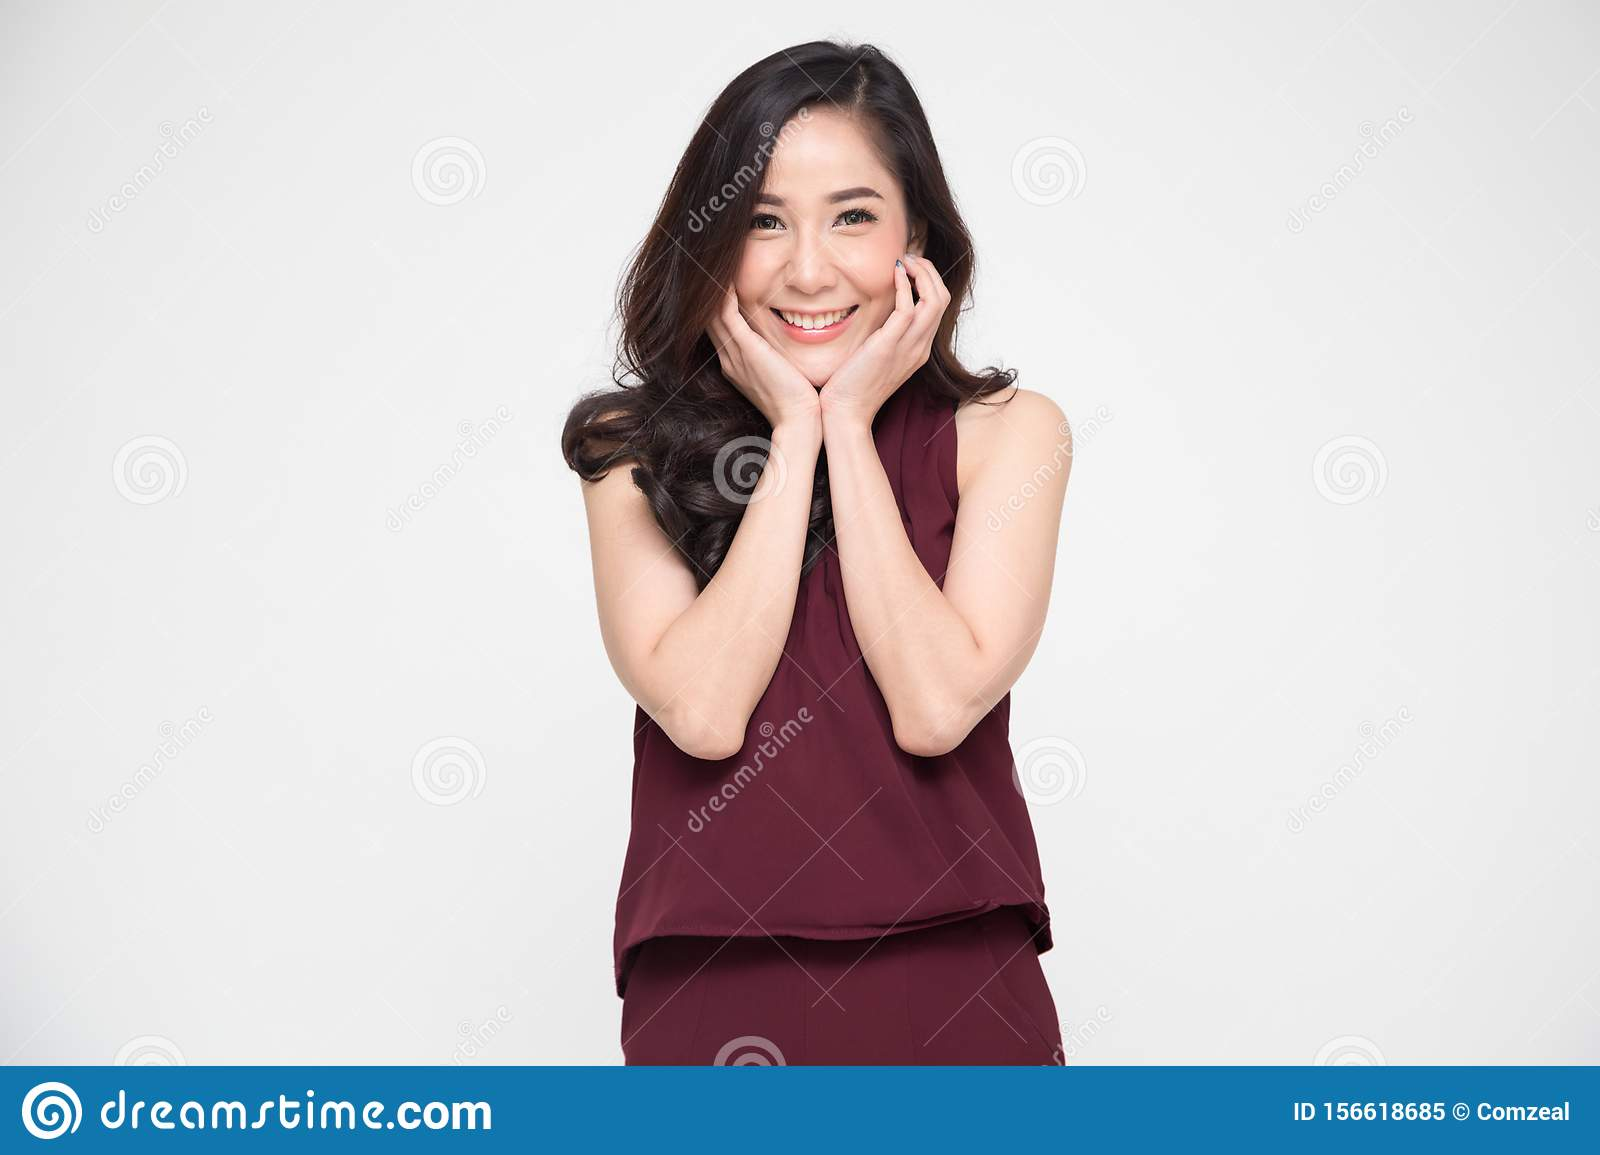 Portrait of delighted Asian woman smiling and dreamy expression,